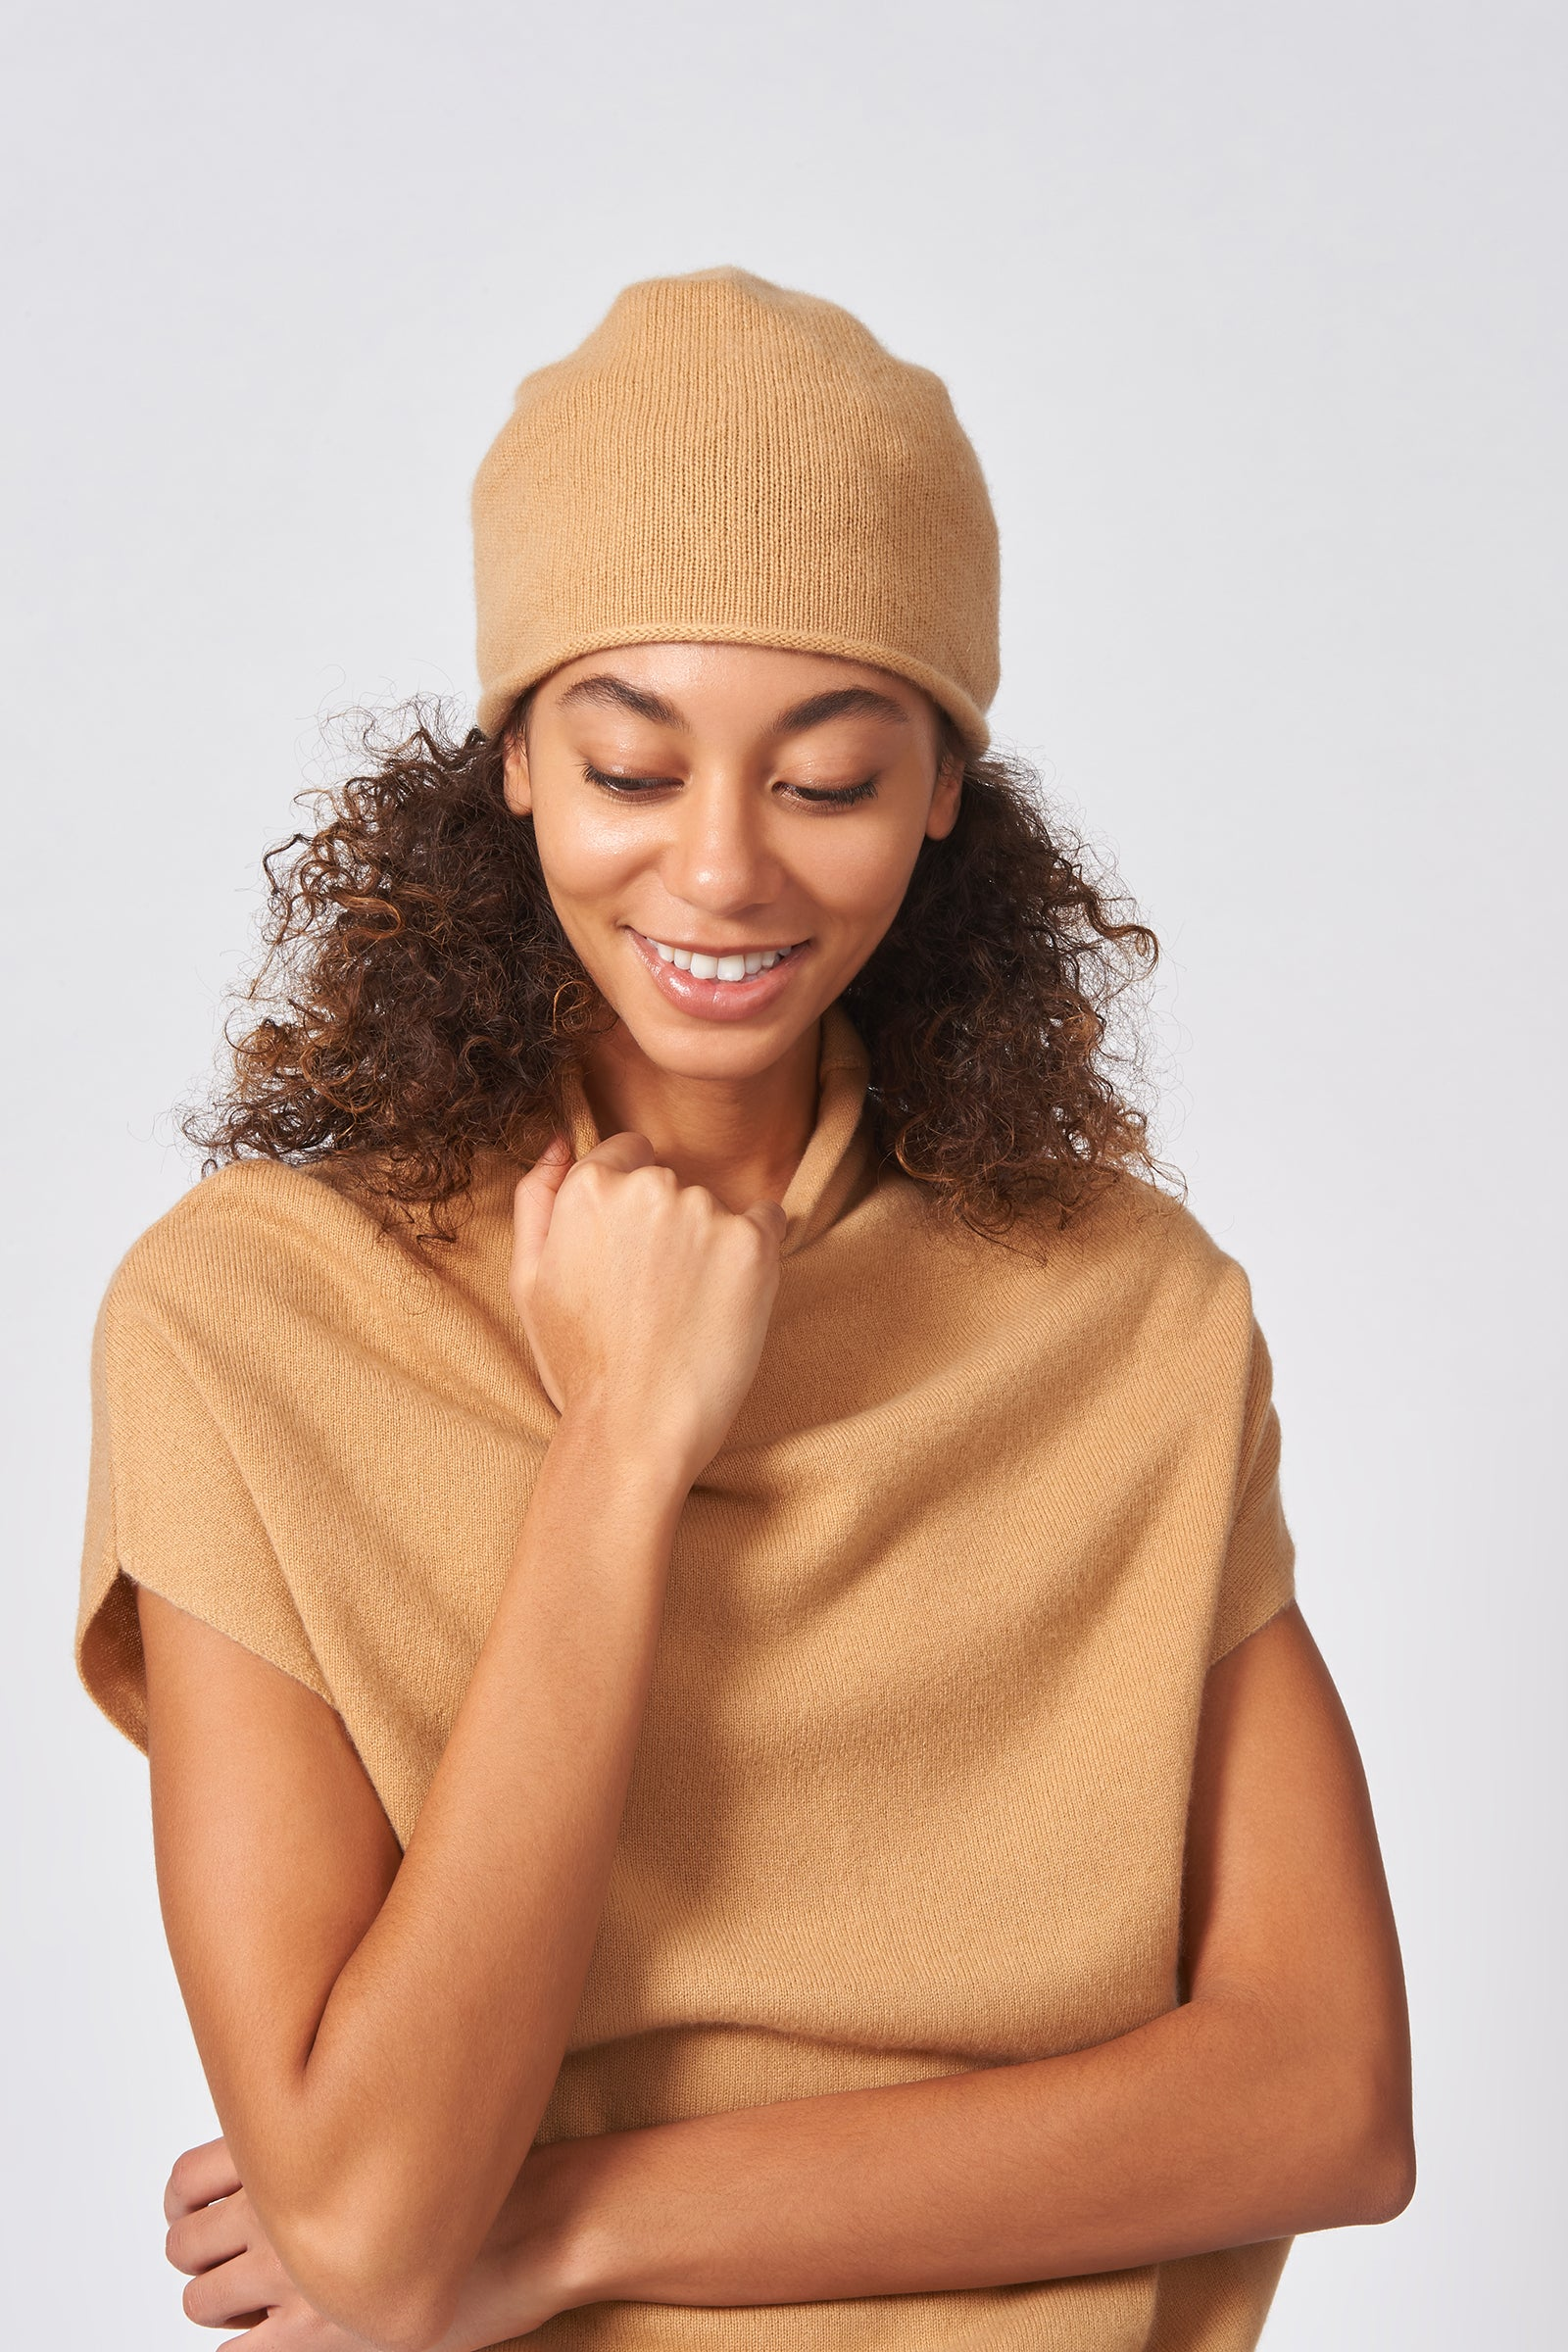 Kal Rieman Cashmere Cap in Camel on Model Front Close-up View